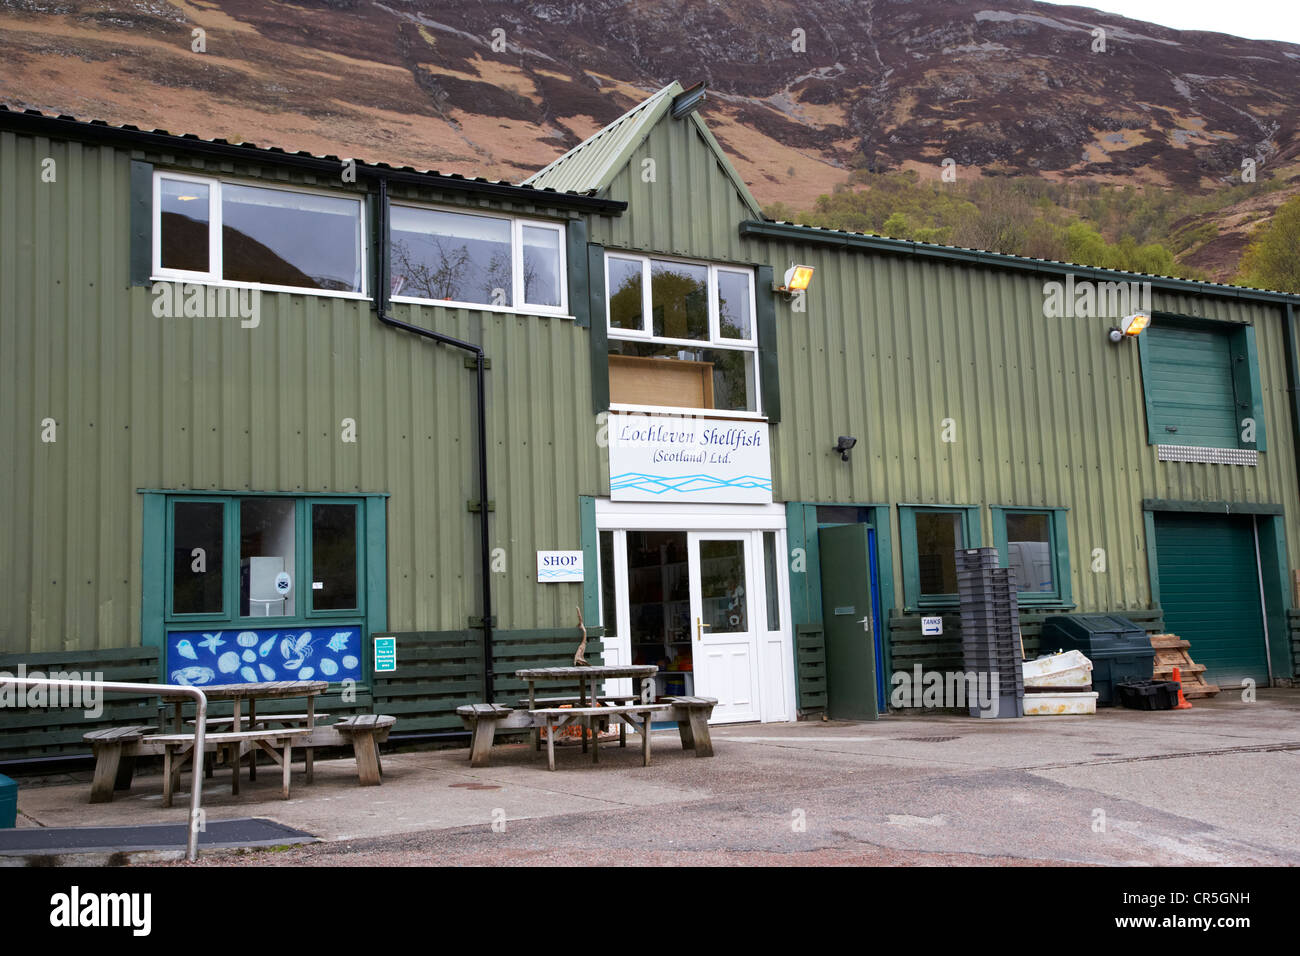 lochleven shellfish headquarters loch leven scotland uk - Stock Image